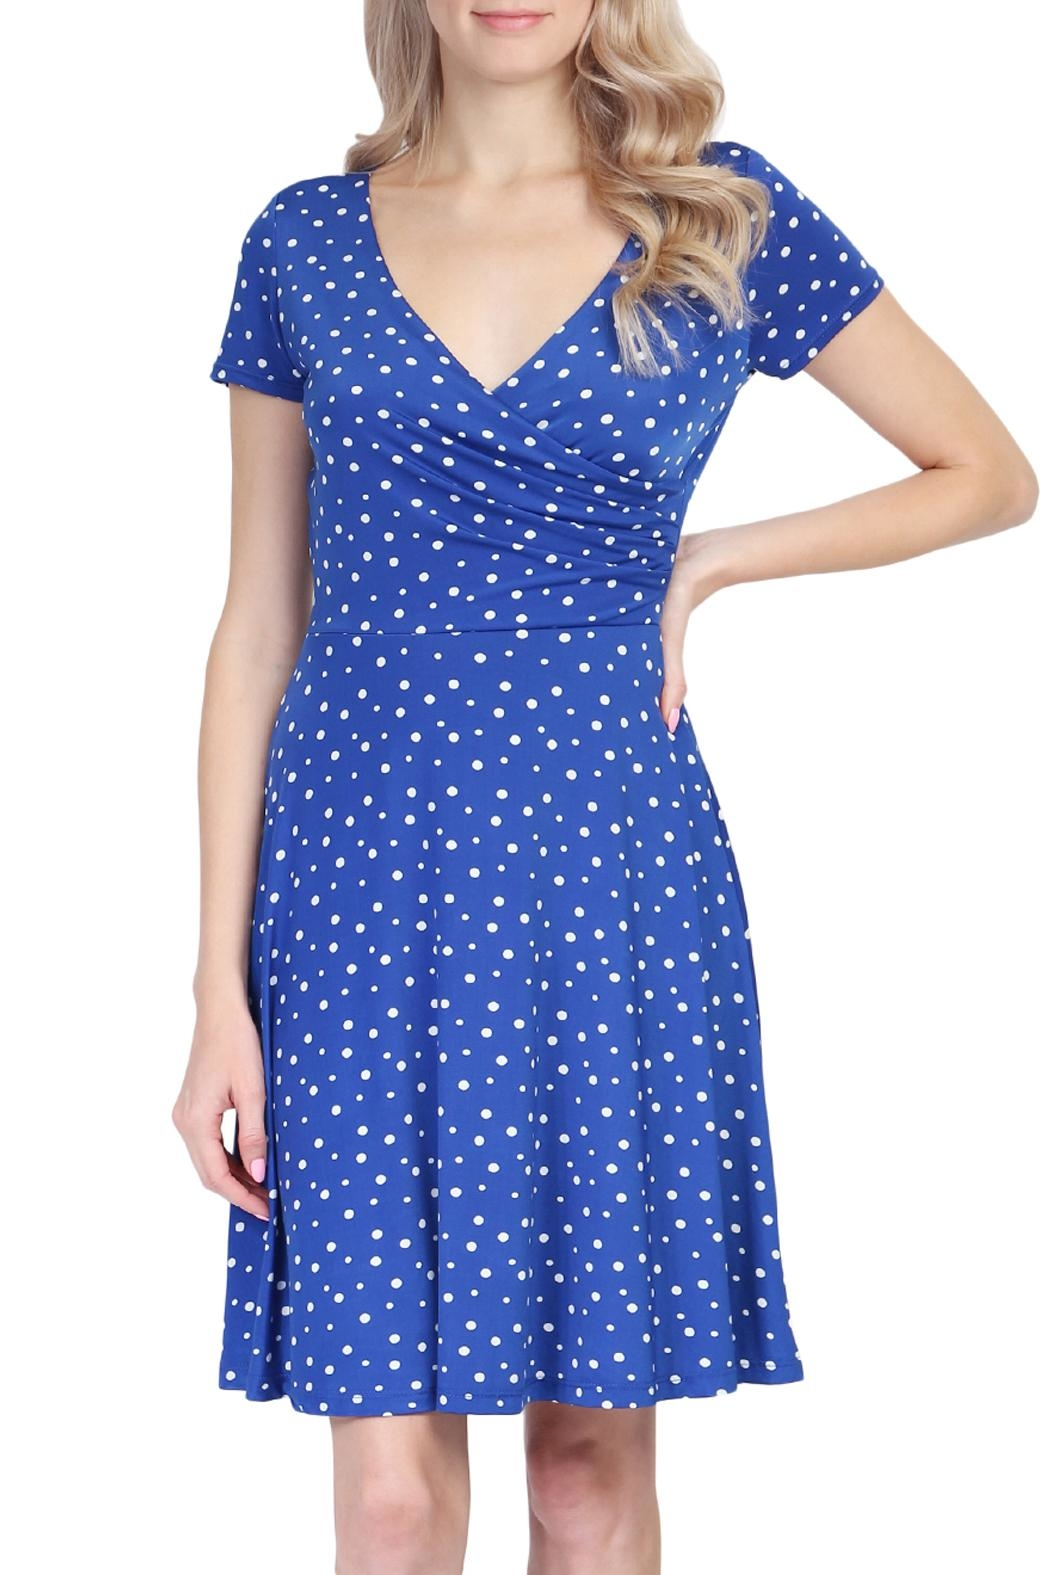 Riah Fashion Polka Dot Dress - Front Cropped Image